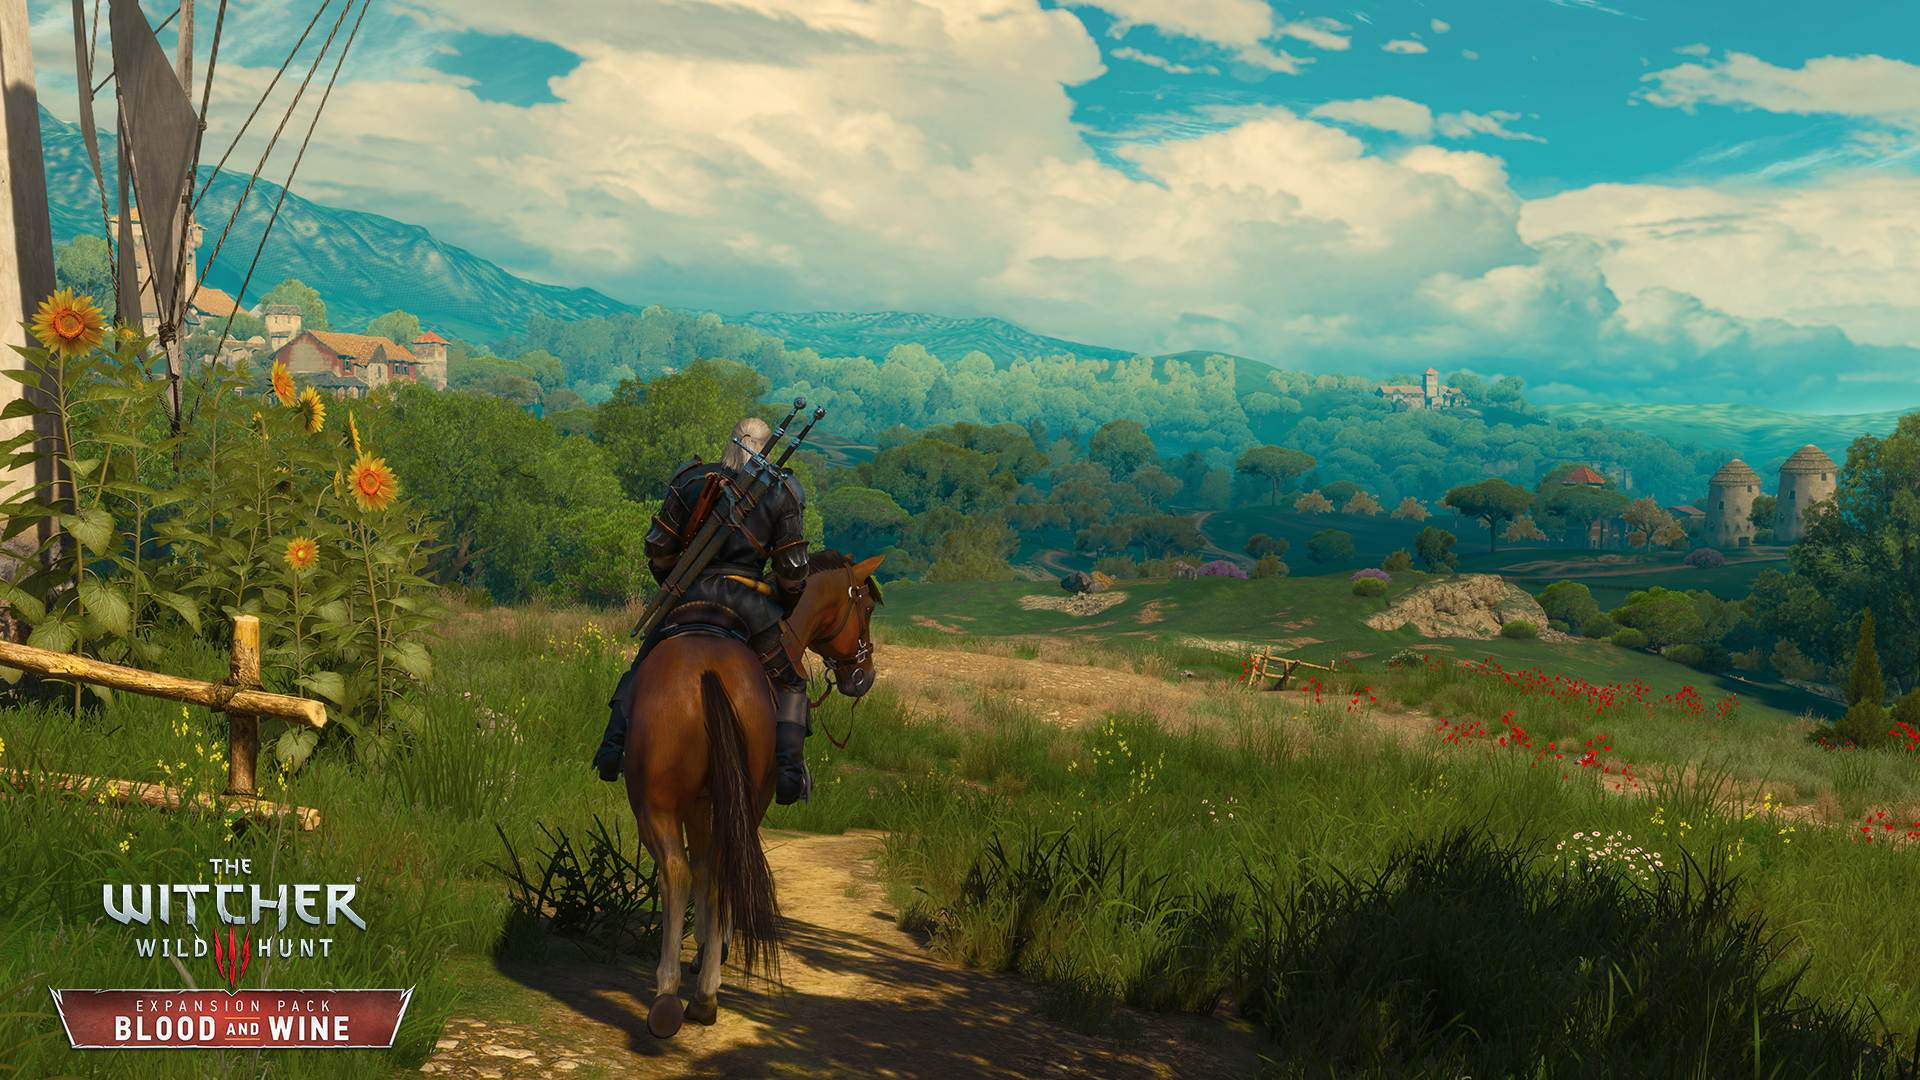 the witcher 3 patch 1.23 pc